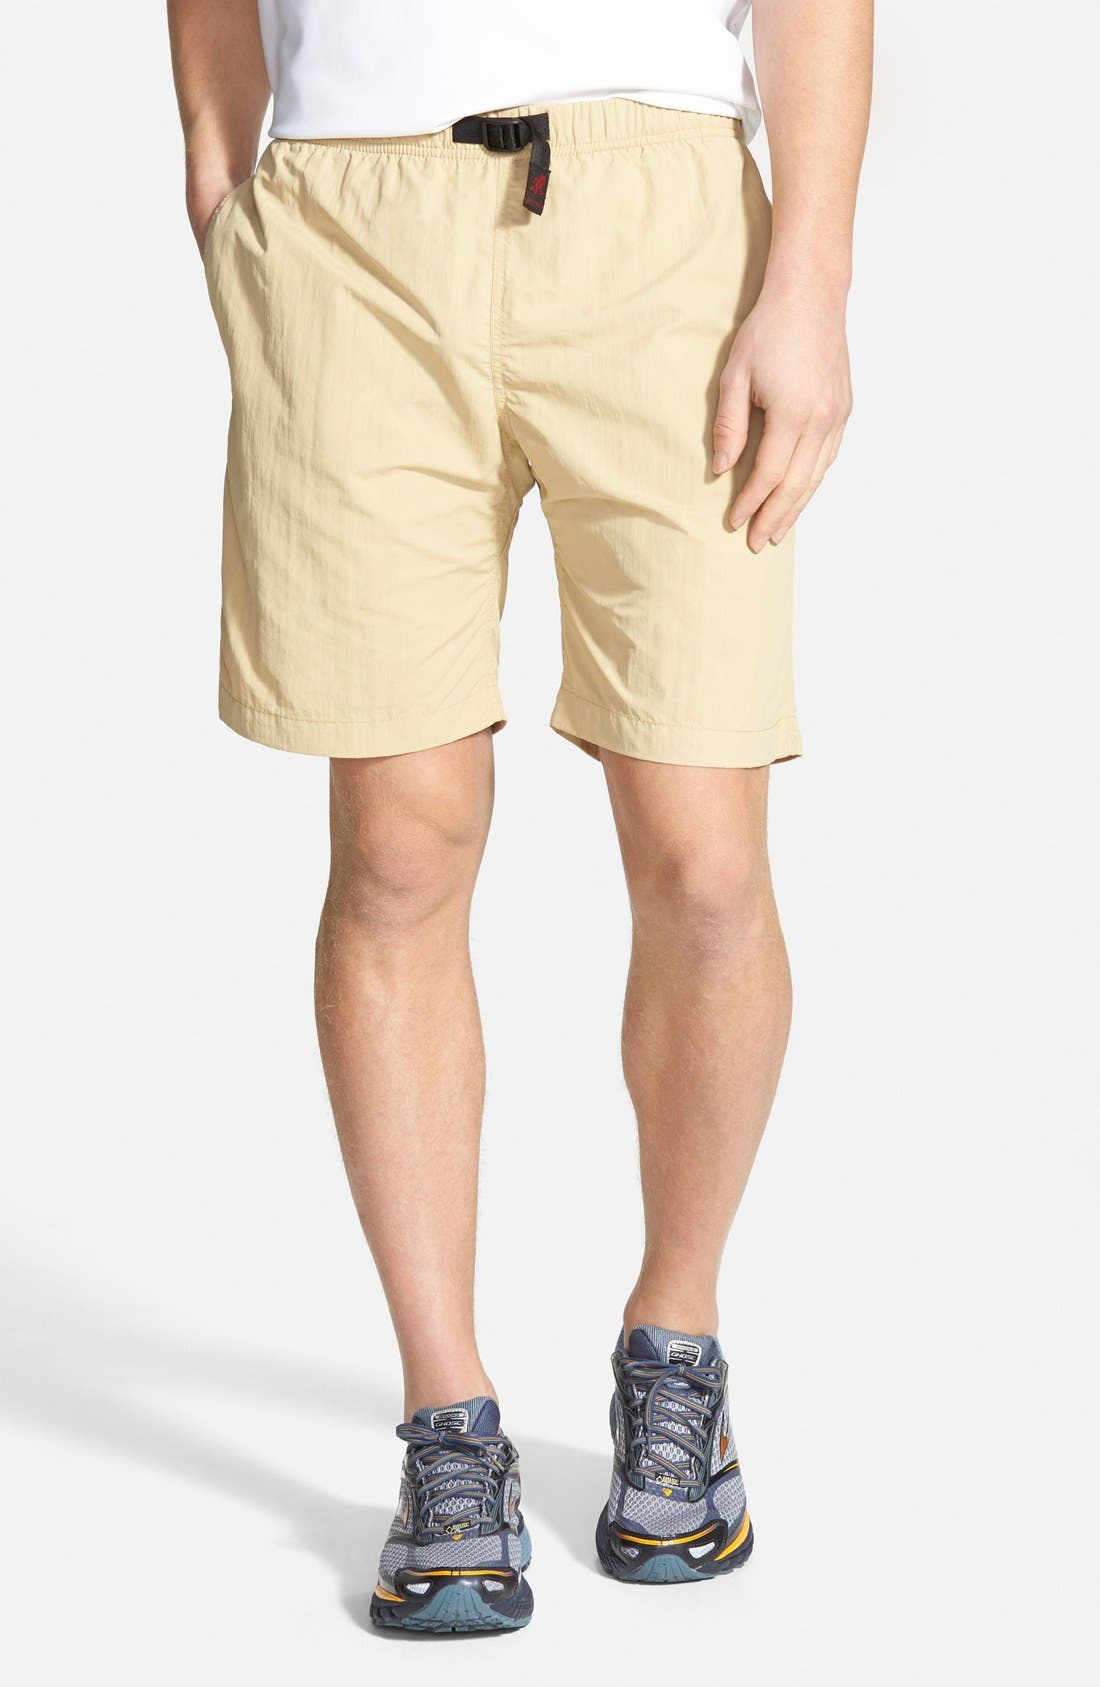 Alternate Image 1 Selected - Gramicci 'Rocket Dry G' Quick Dry Shorts (Online Only)